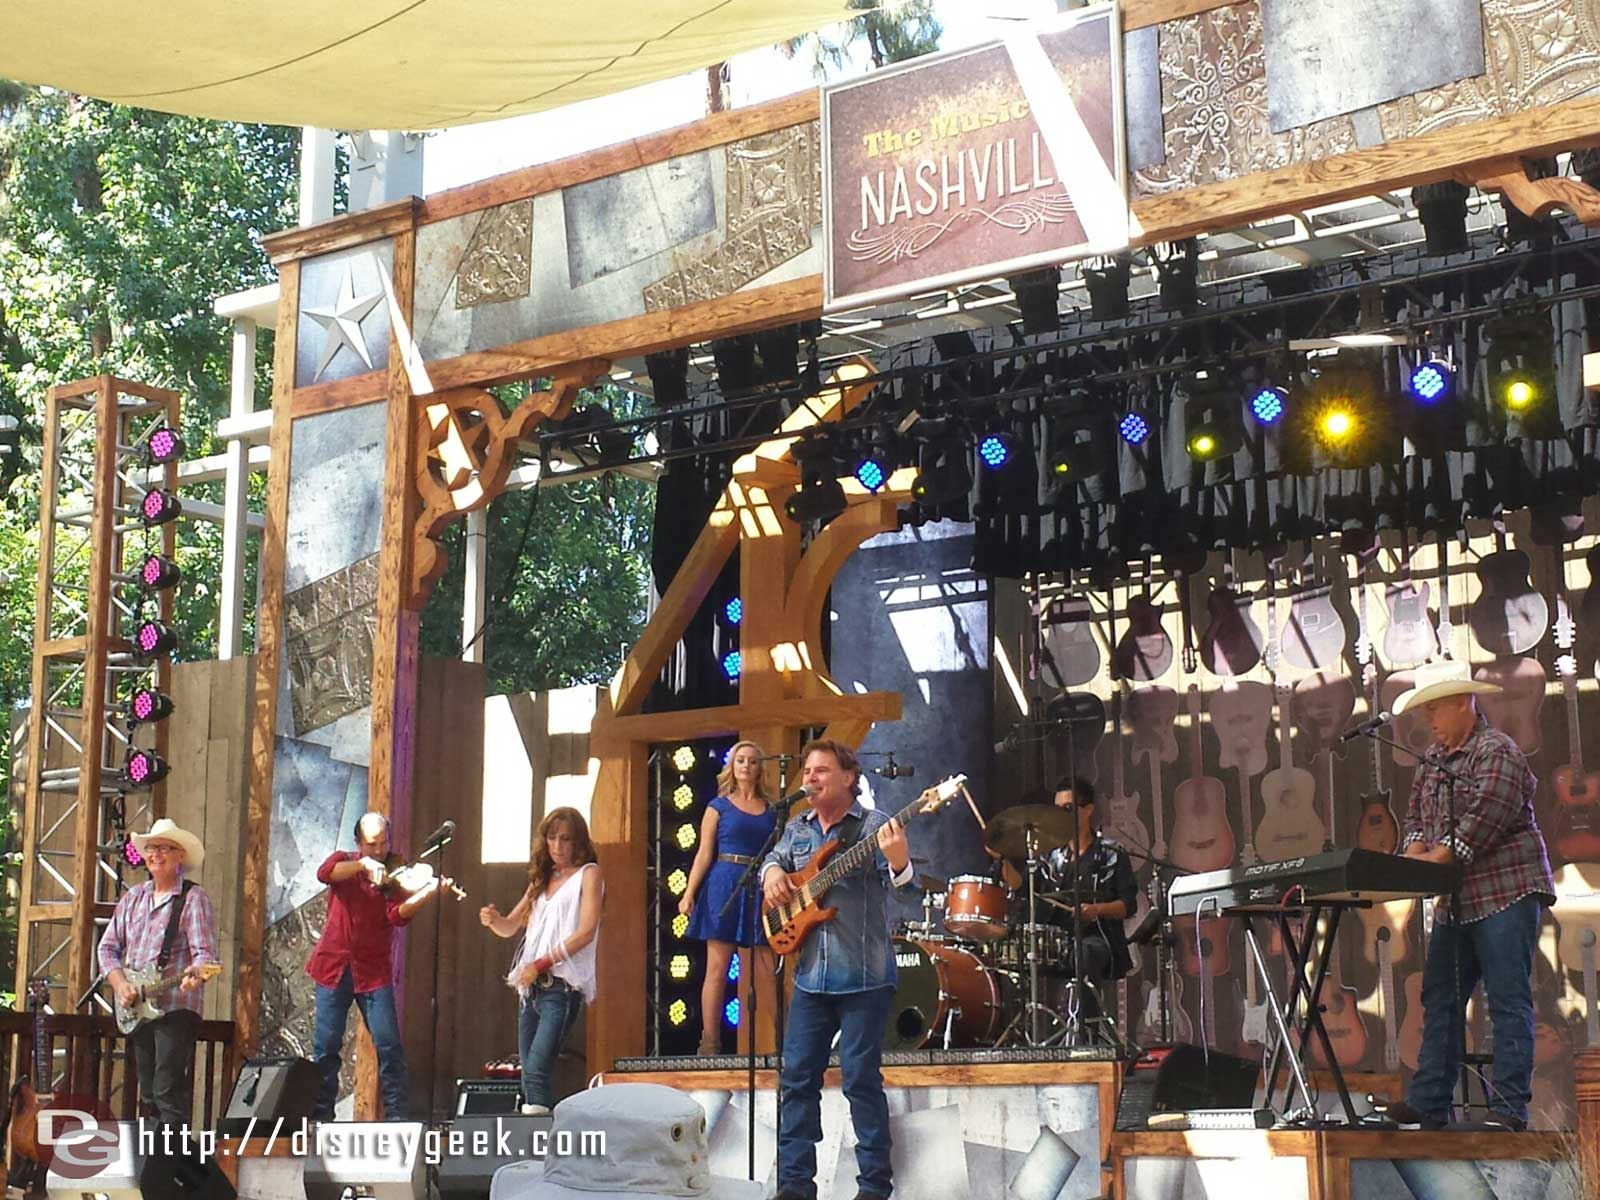 This is the last weekend to catch the music of Nashville at the Big Thunder Ranch Jamboree